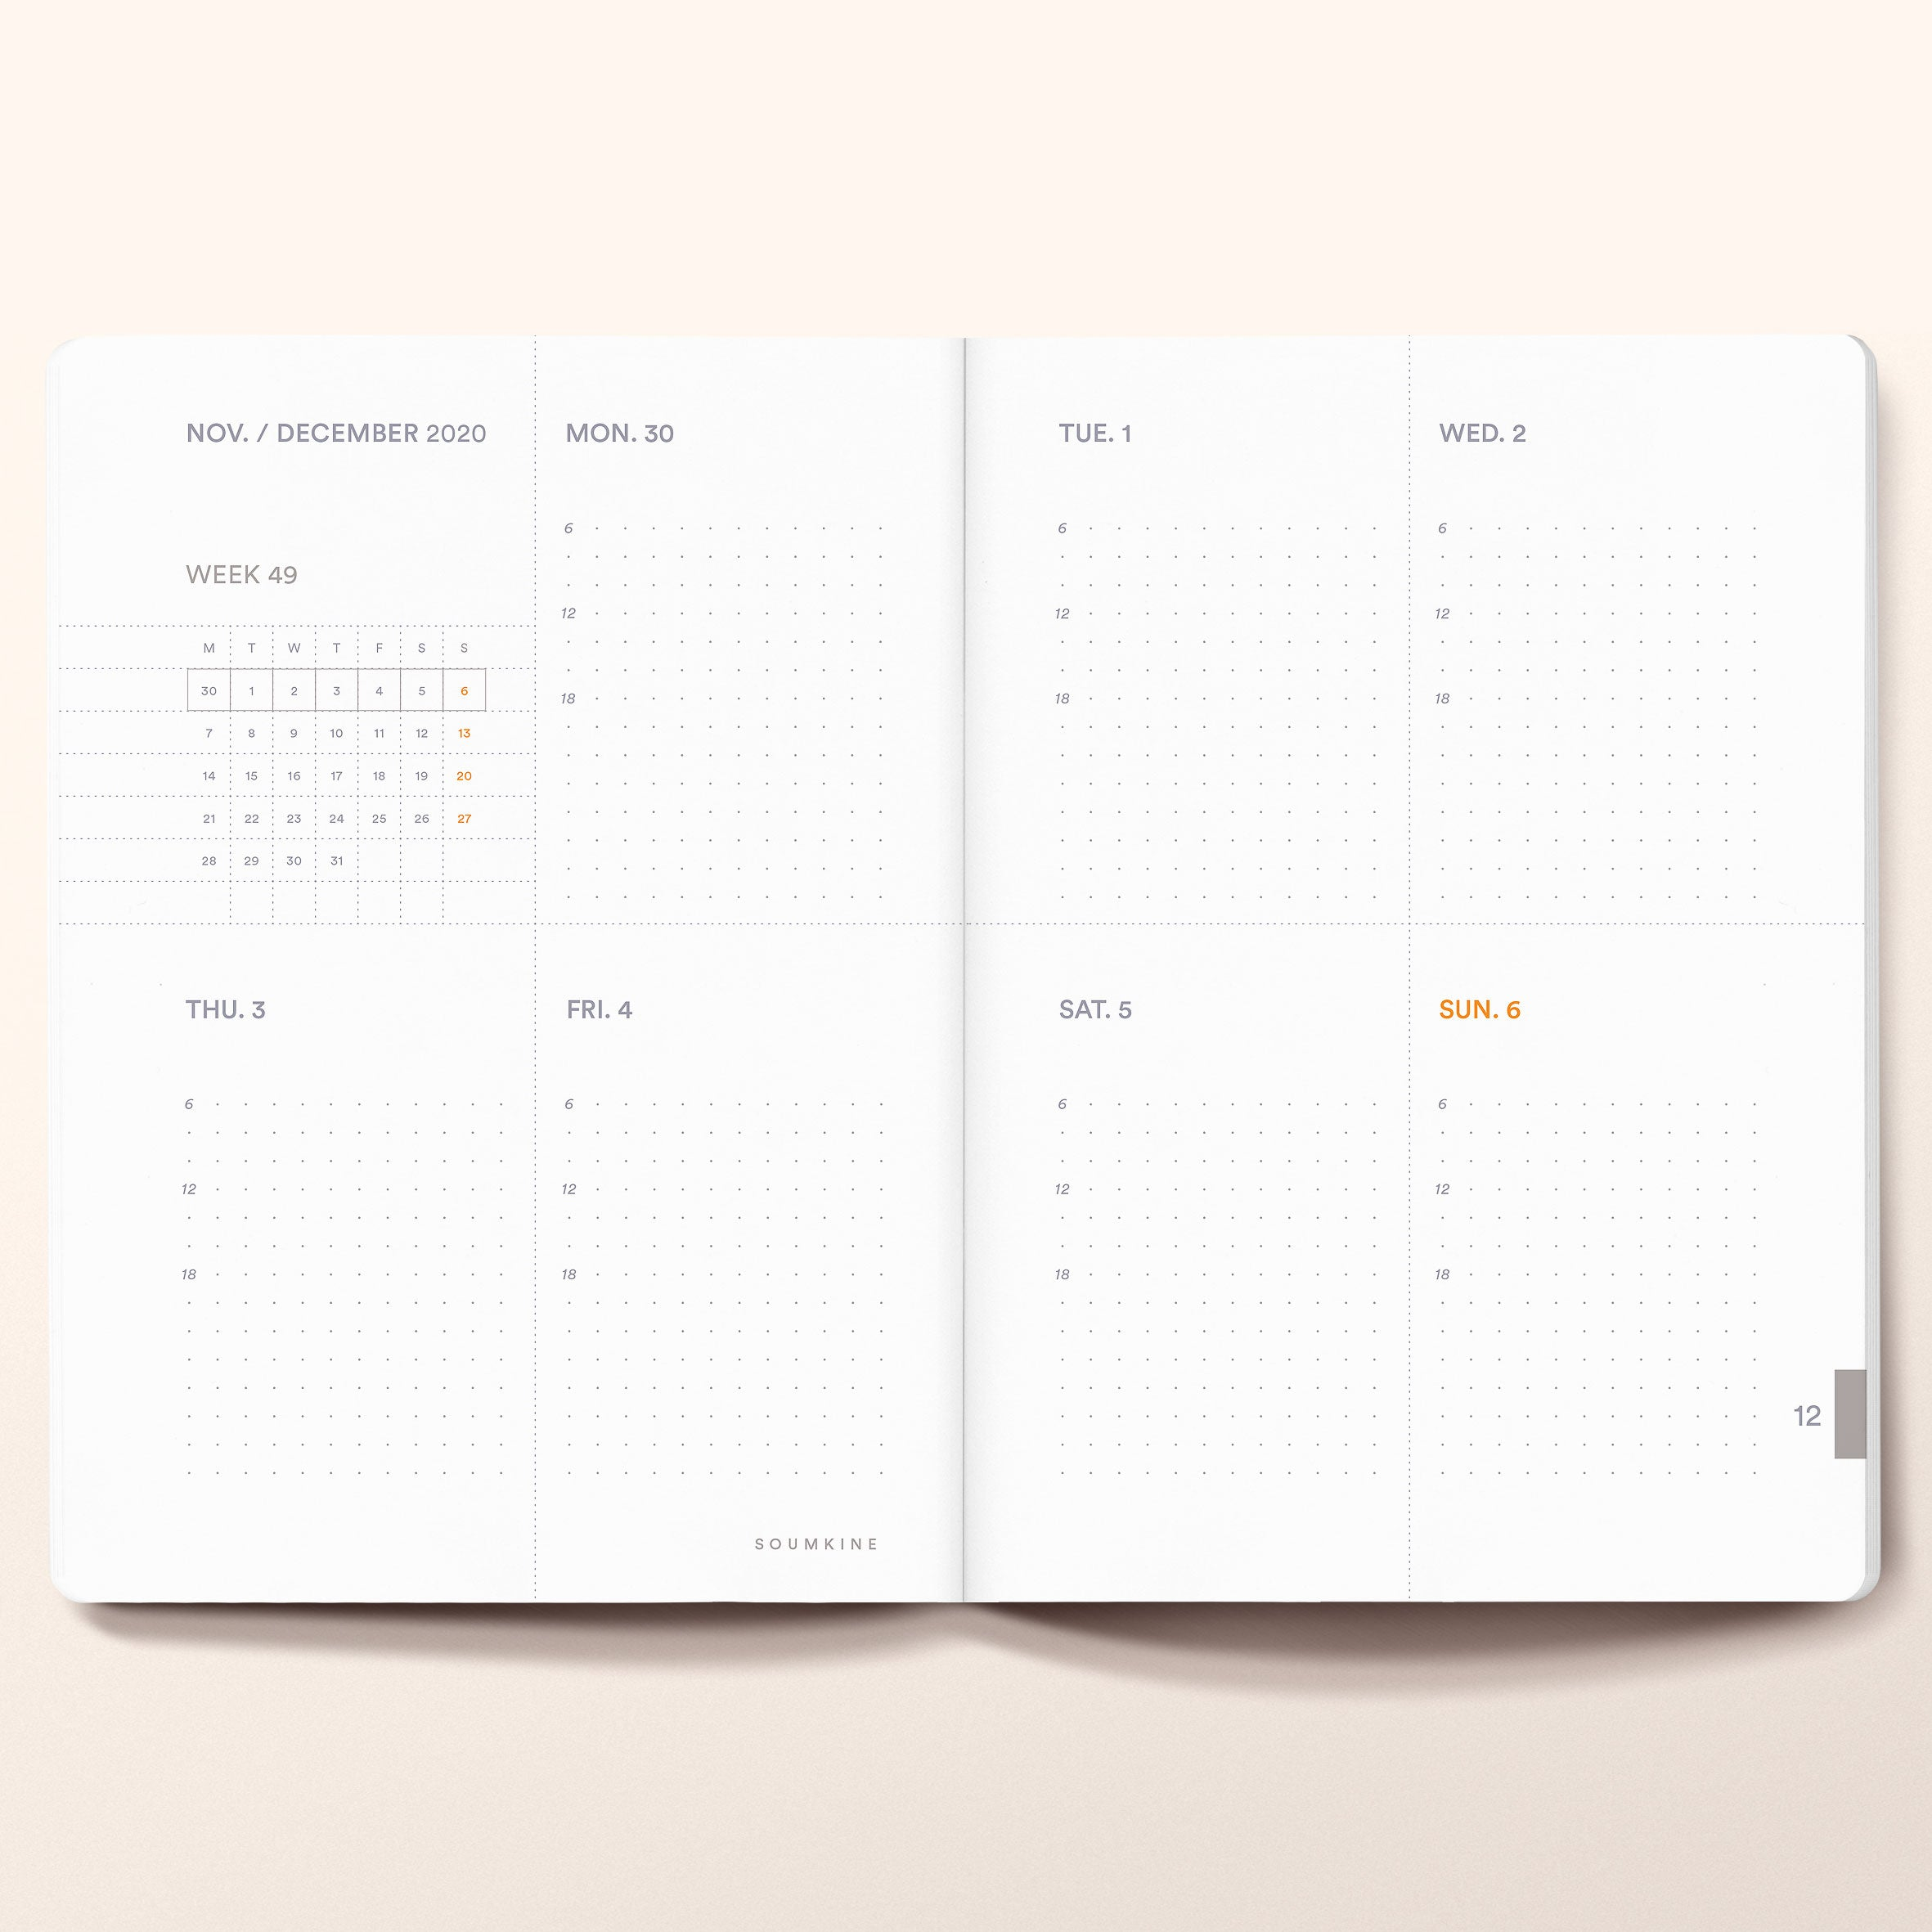 """Untitled 02"" by Anna Chask. 2021 Weekly planner B6 Size. 100% Cotton Paper"